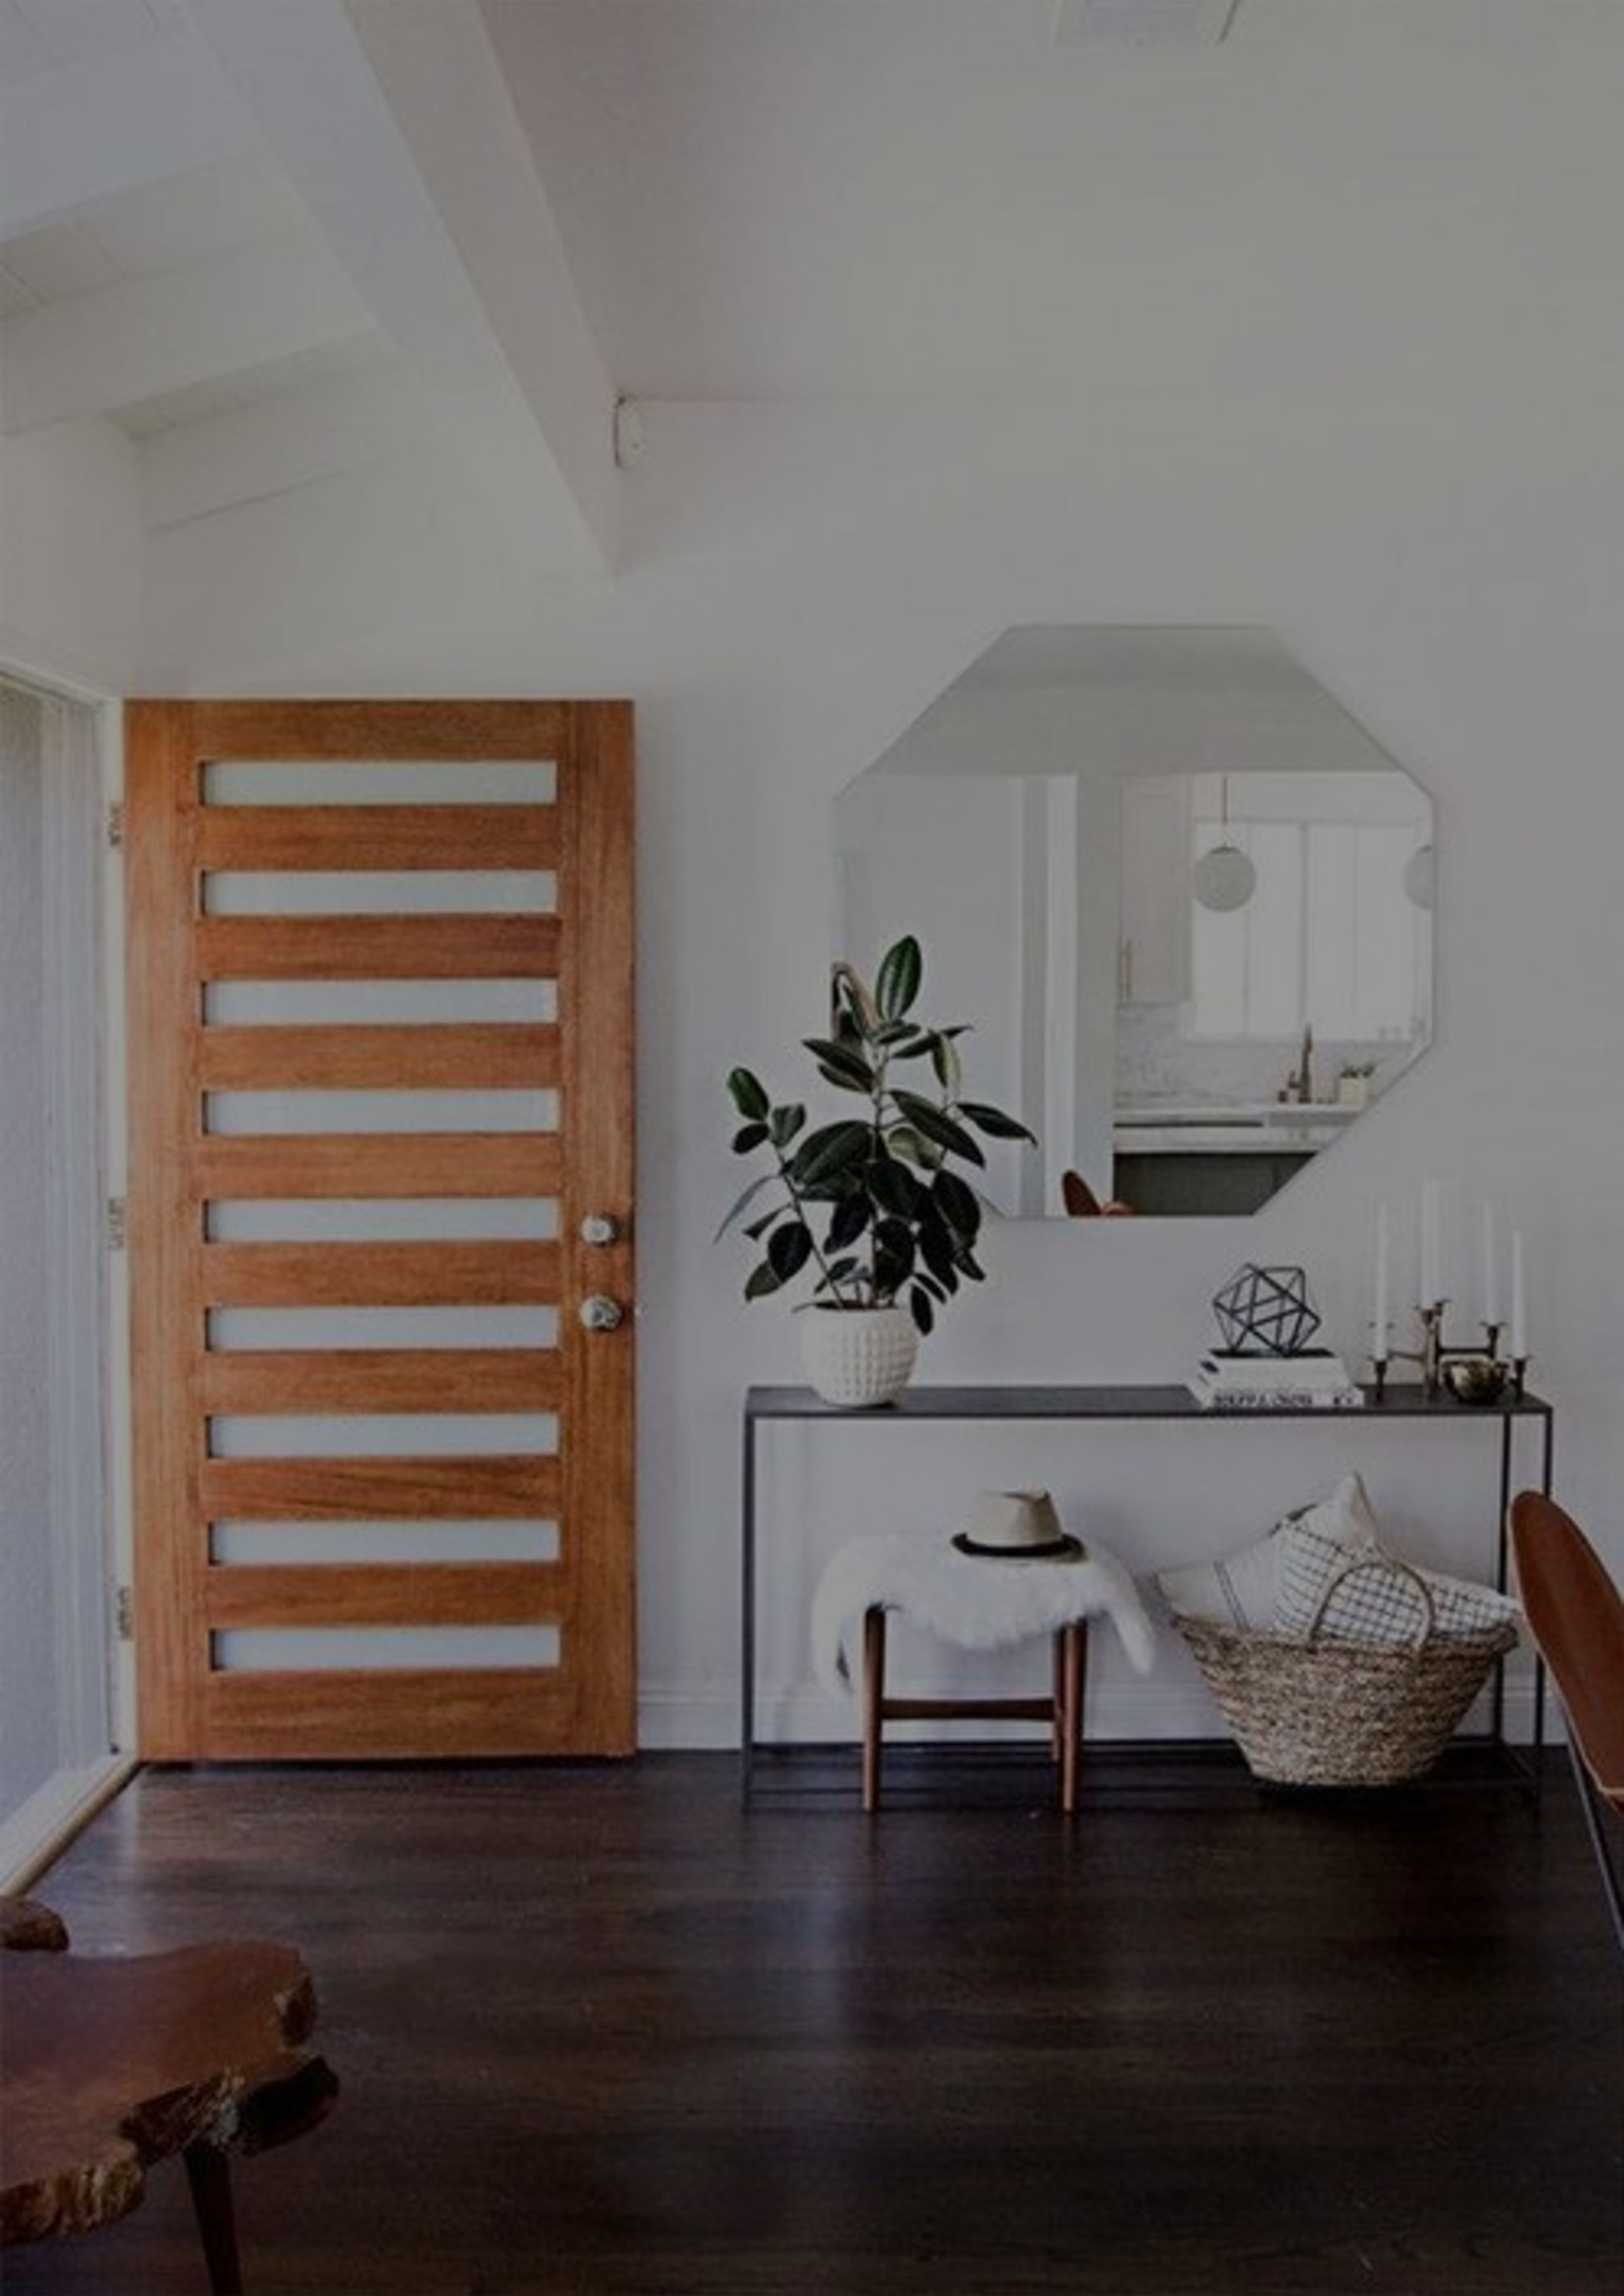 How to Keep Your Home Healthy